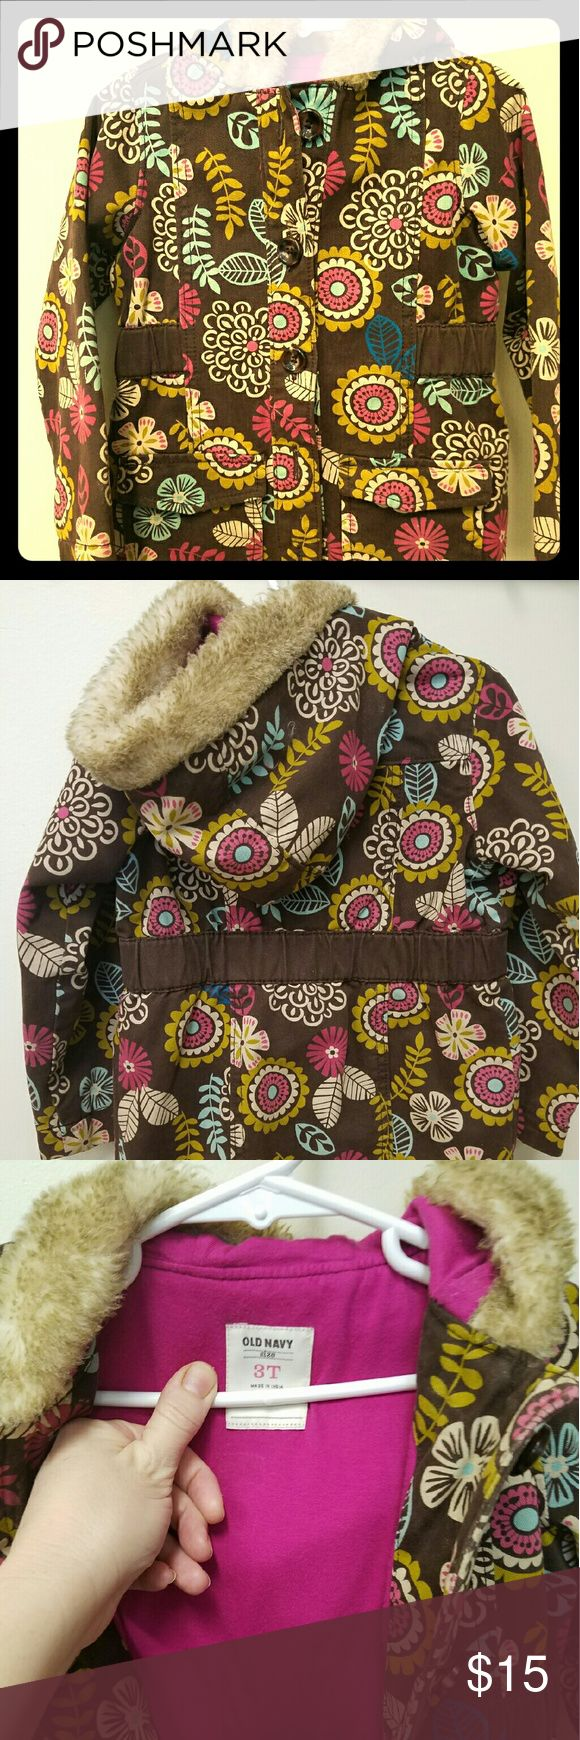 Old Navy 3T girls peacoat Adorable, retro style peacoat with faux fur hood Old Navy Jackets & Coats Pea Coats